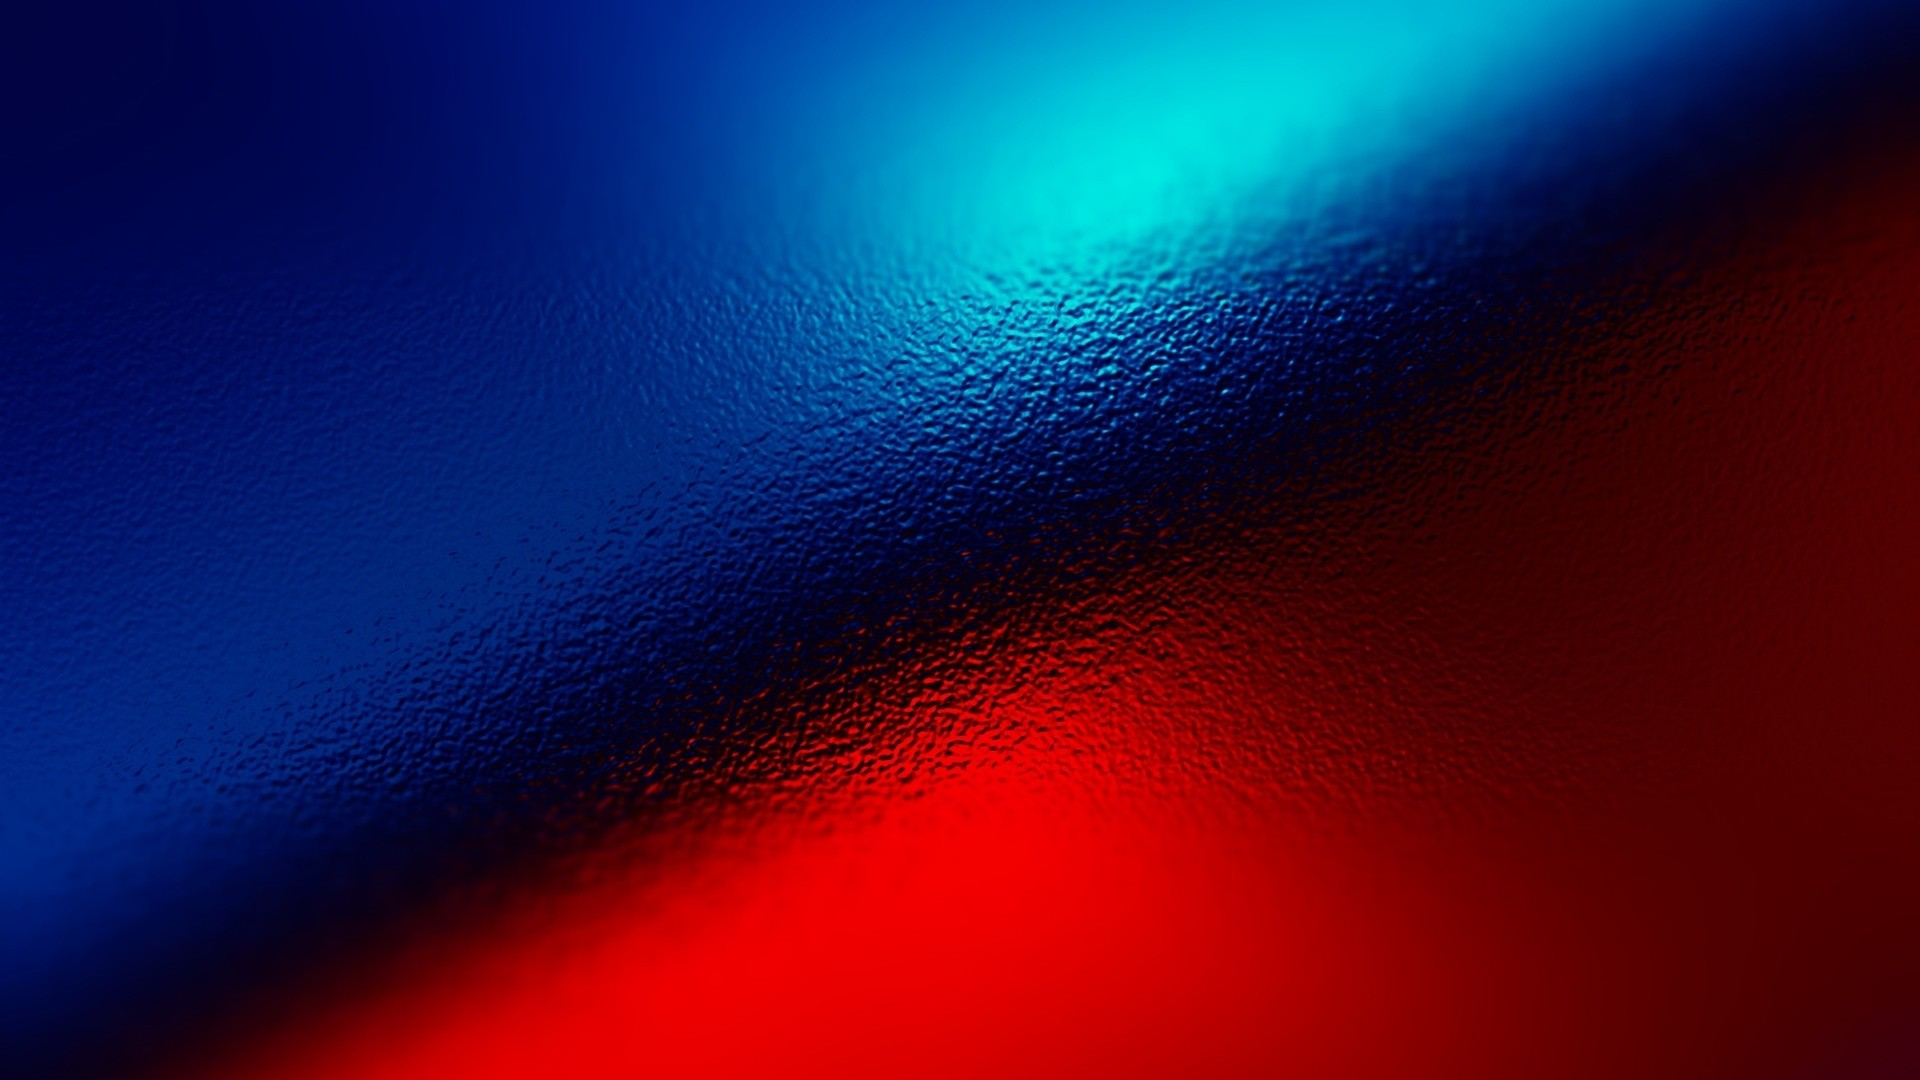 blue and red wallpaper hd